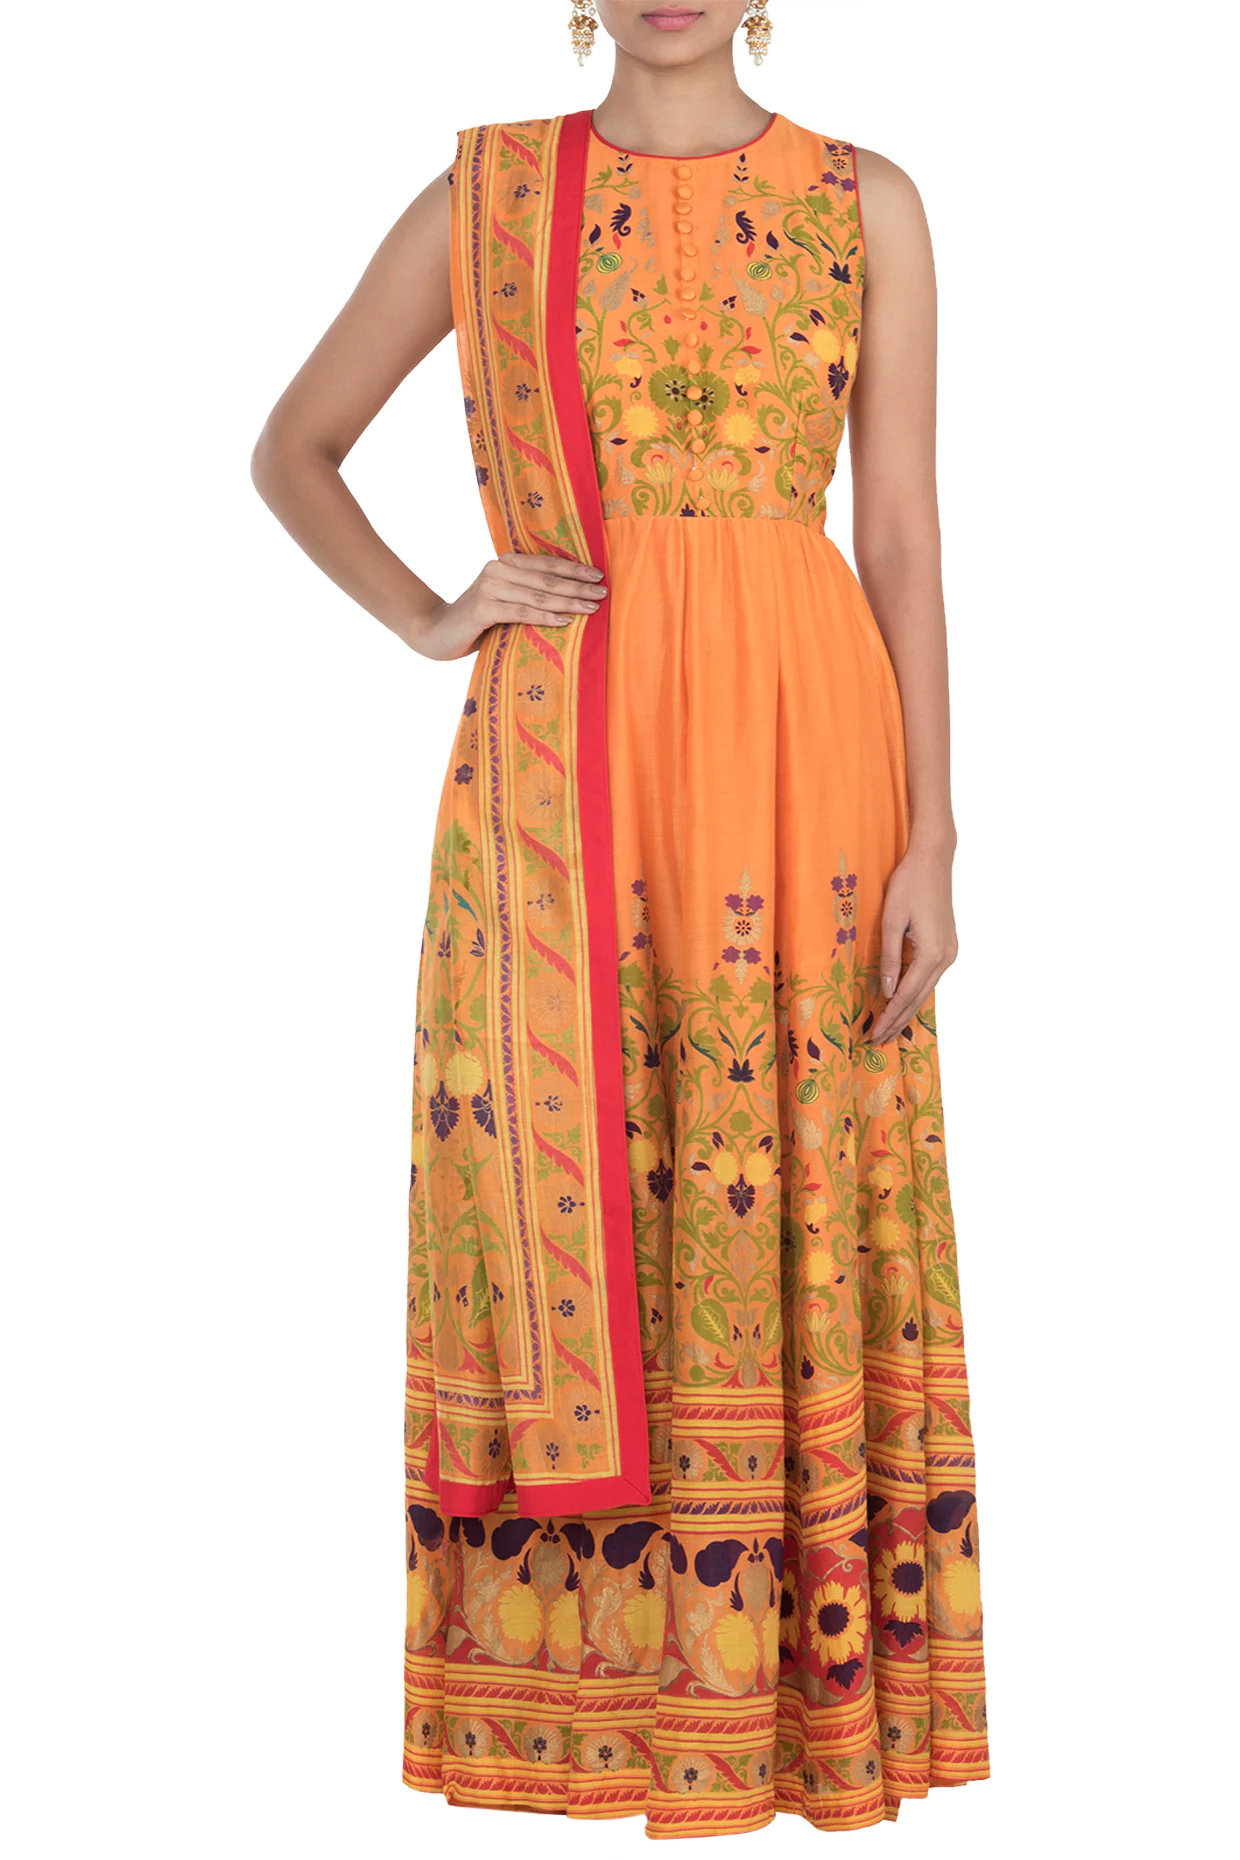 Orange Printed Anarkali Set by Surendri-Handpicked for You